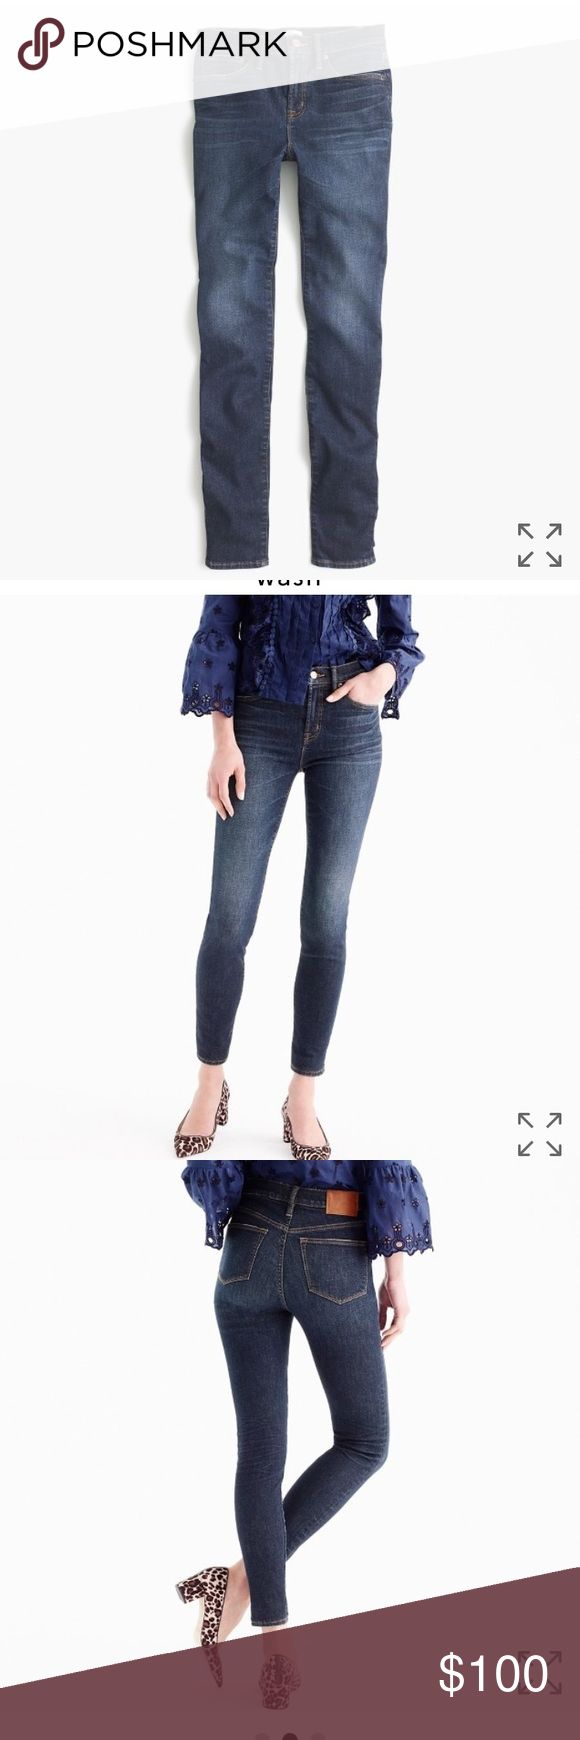 BRAND NEW JCREW | high-rise, soft denim LAST CHANCE! Currently full priced in stores. JCrew high-rise skinny denim. A classic favorite / great fit! Worn once - accidentally picked up the wrong size! Your lucky day :) J. Crew Jeans